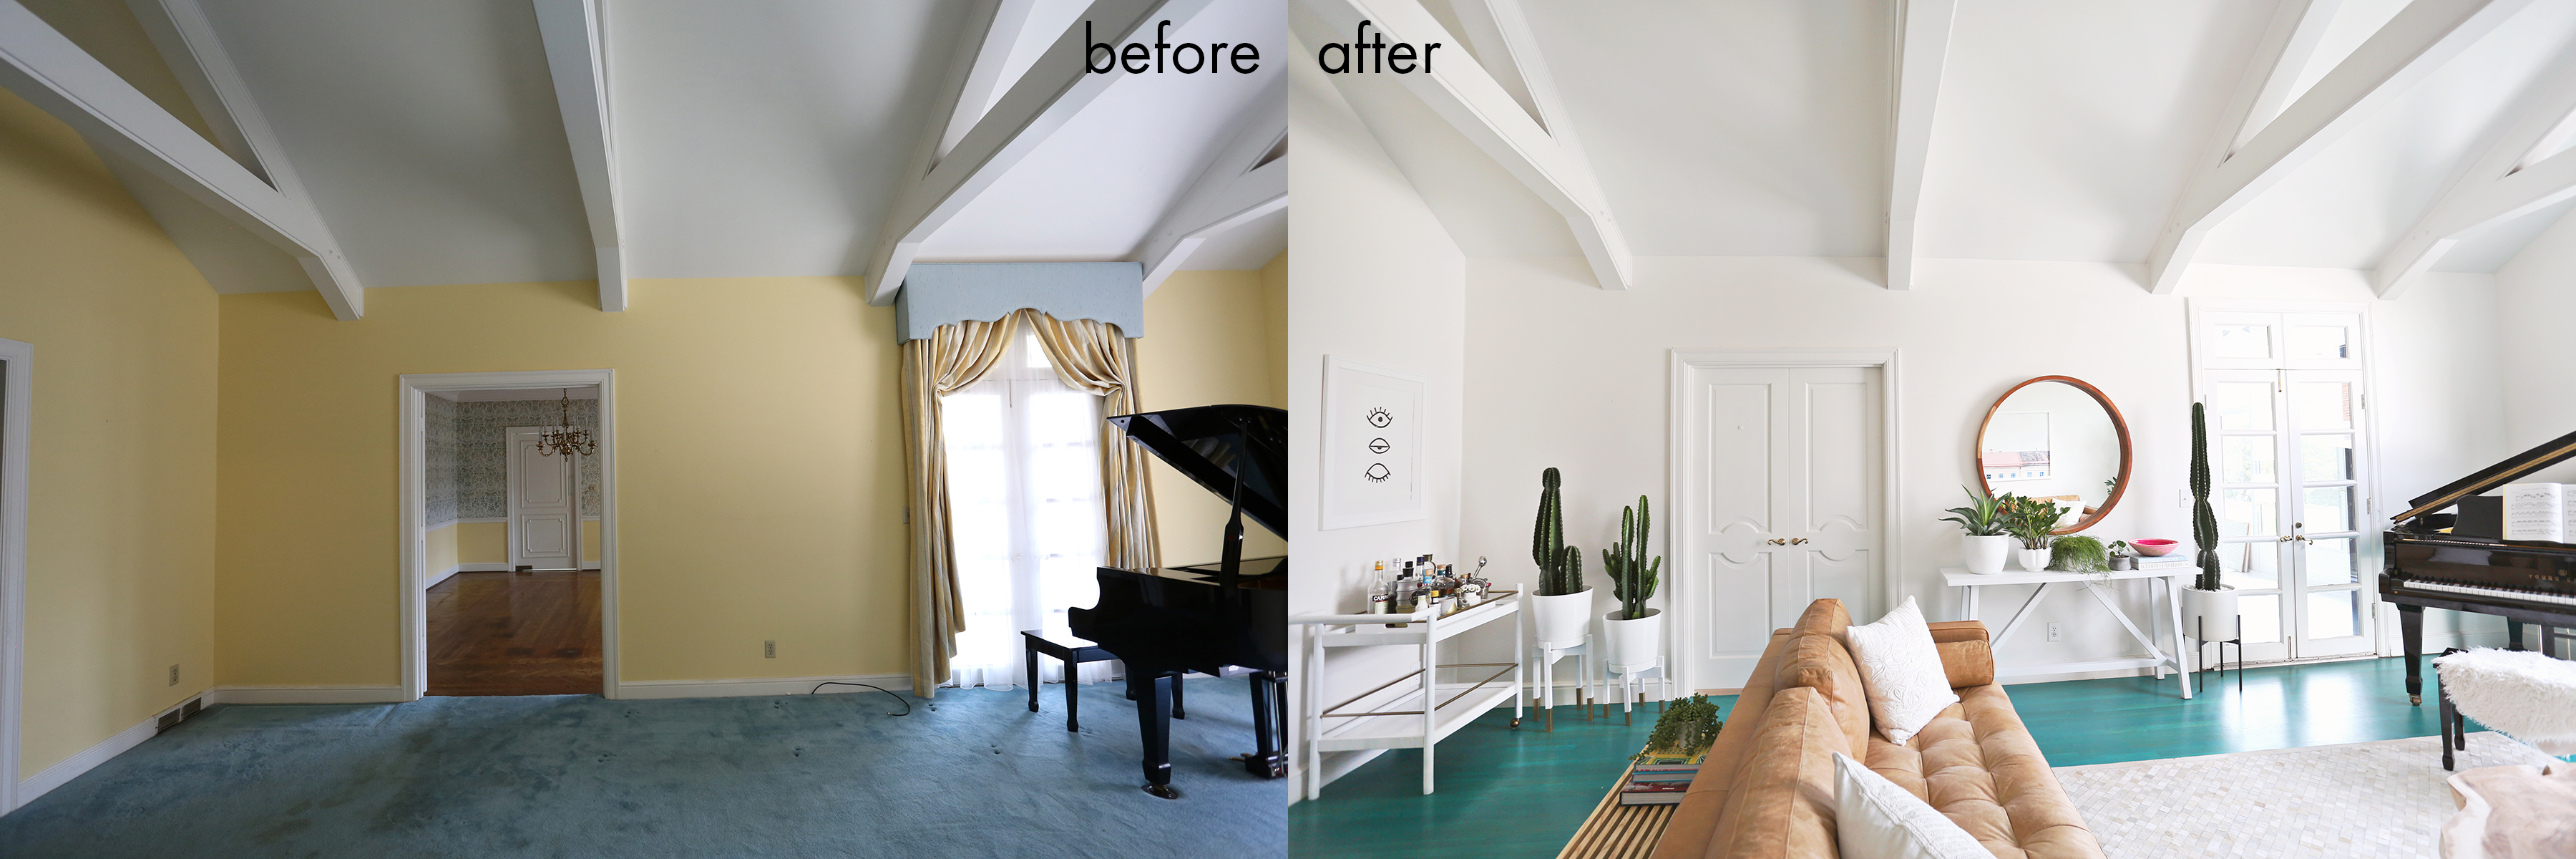 Elsie Larson's living room before + after!